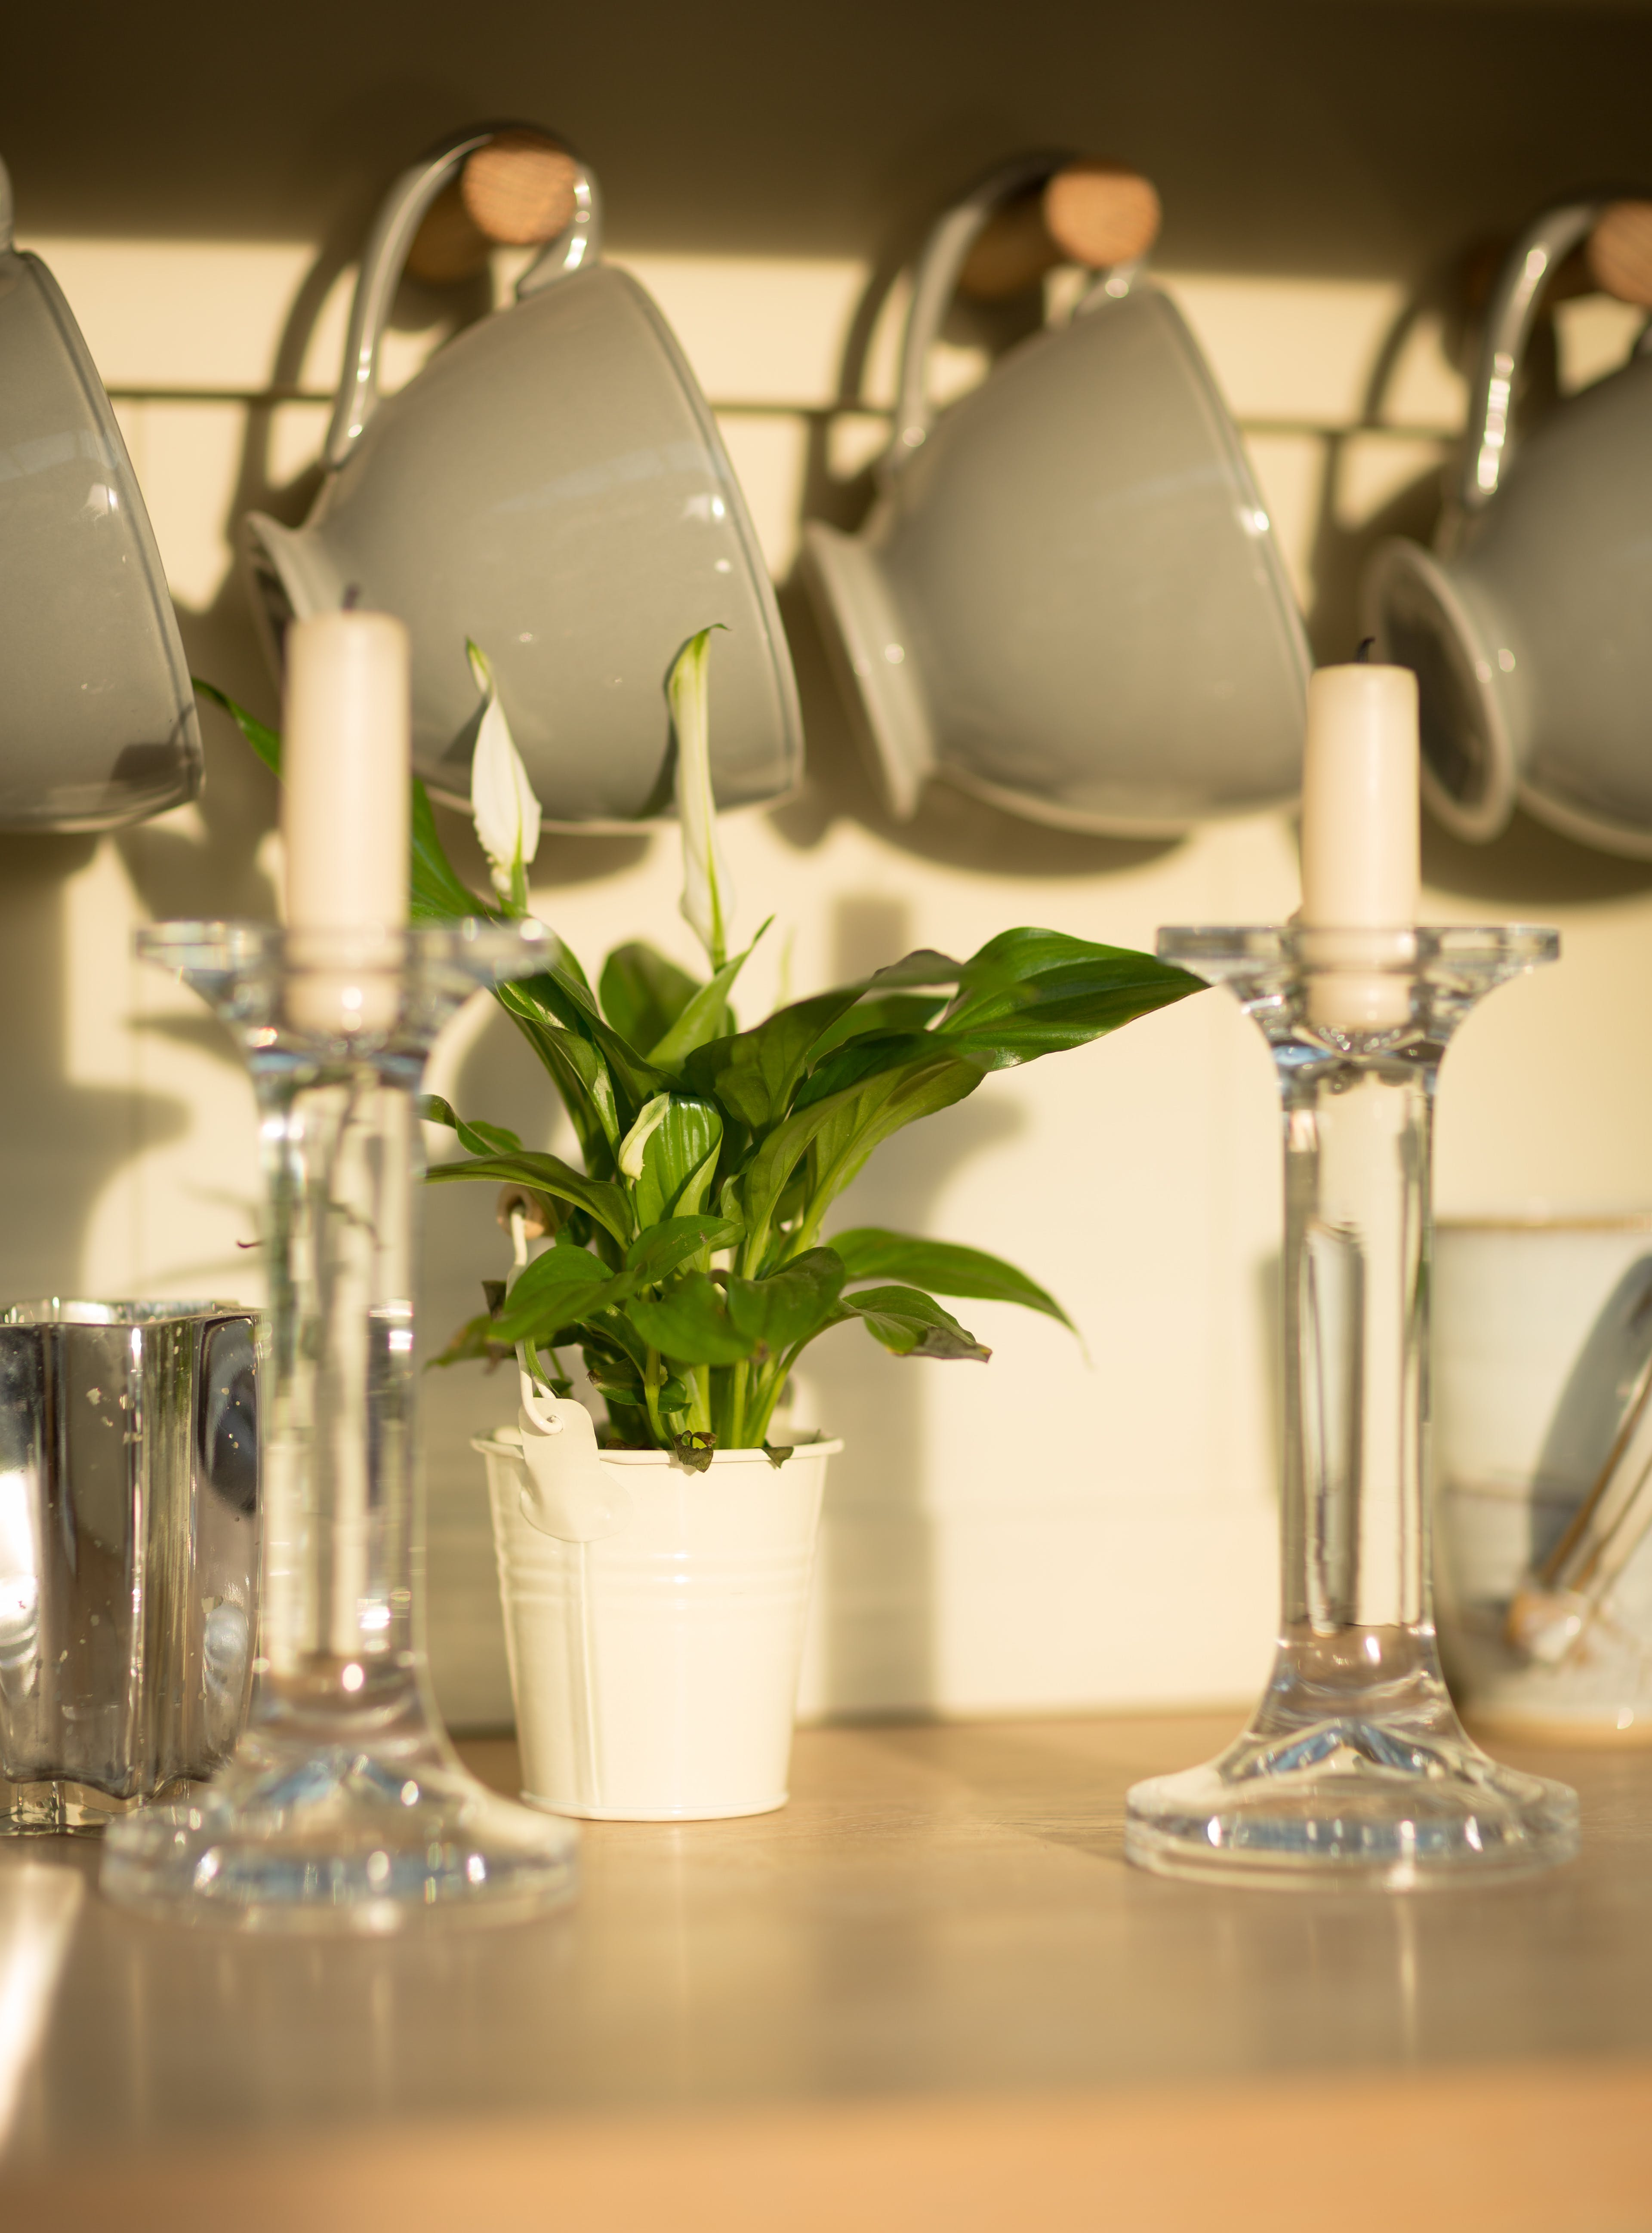 Free stock photo of glass, vintage, plants, cups